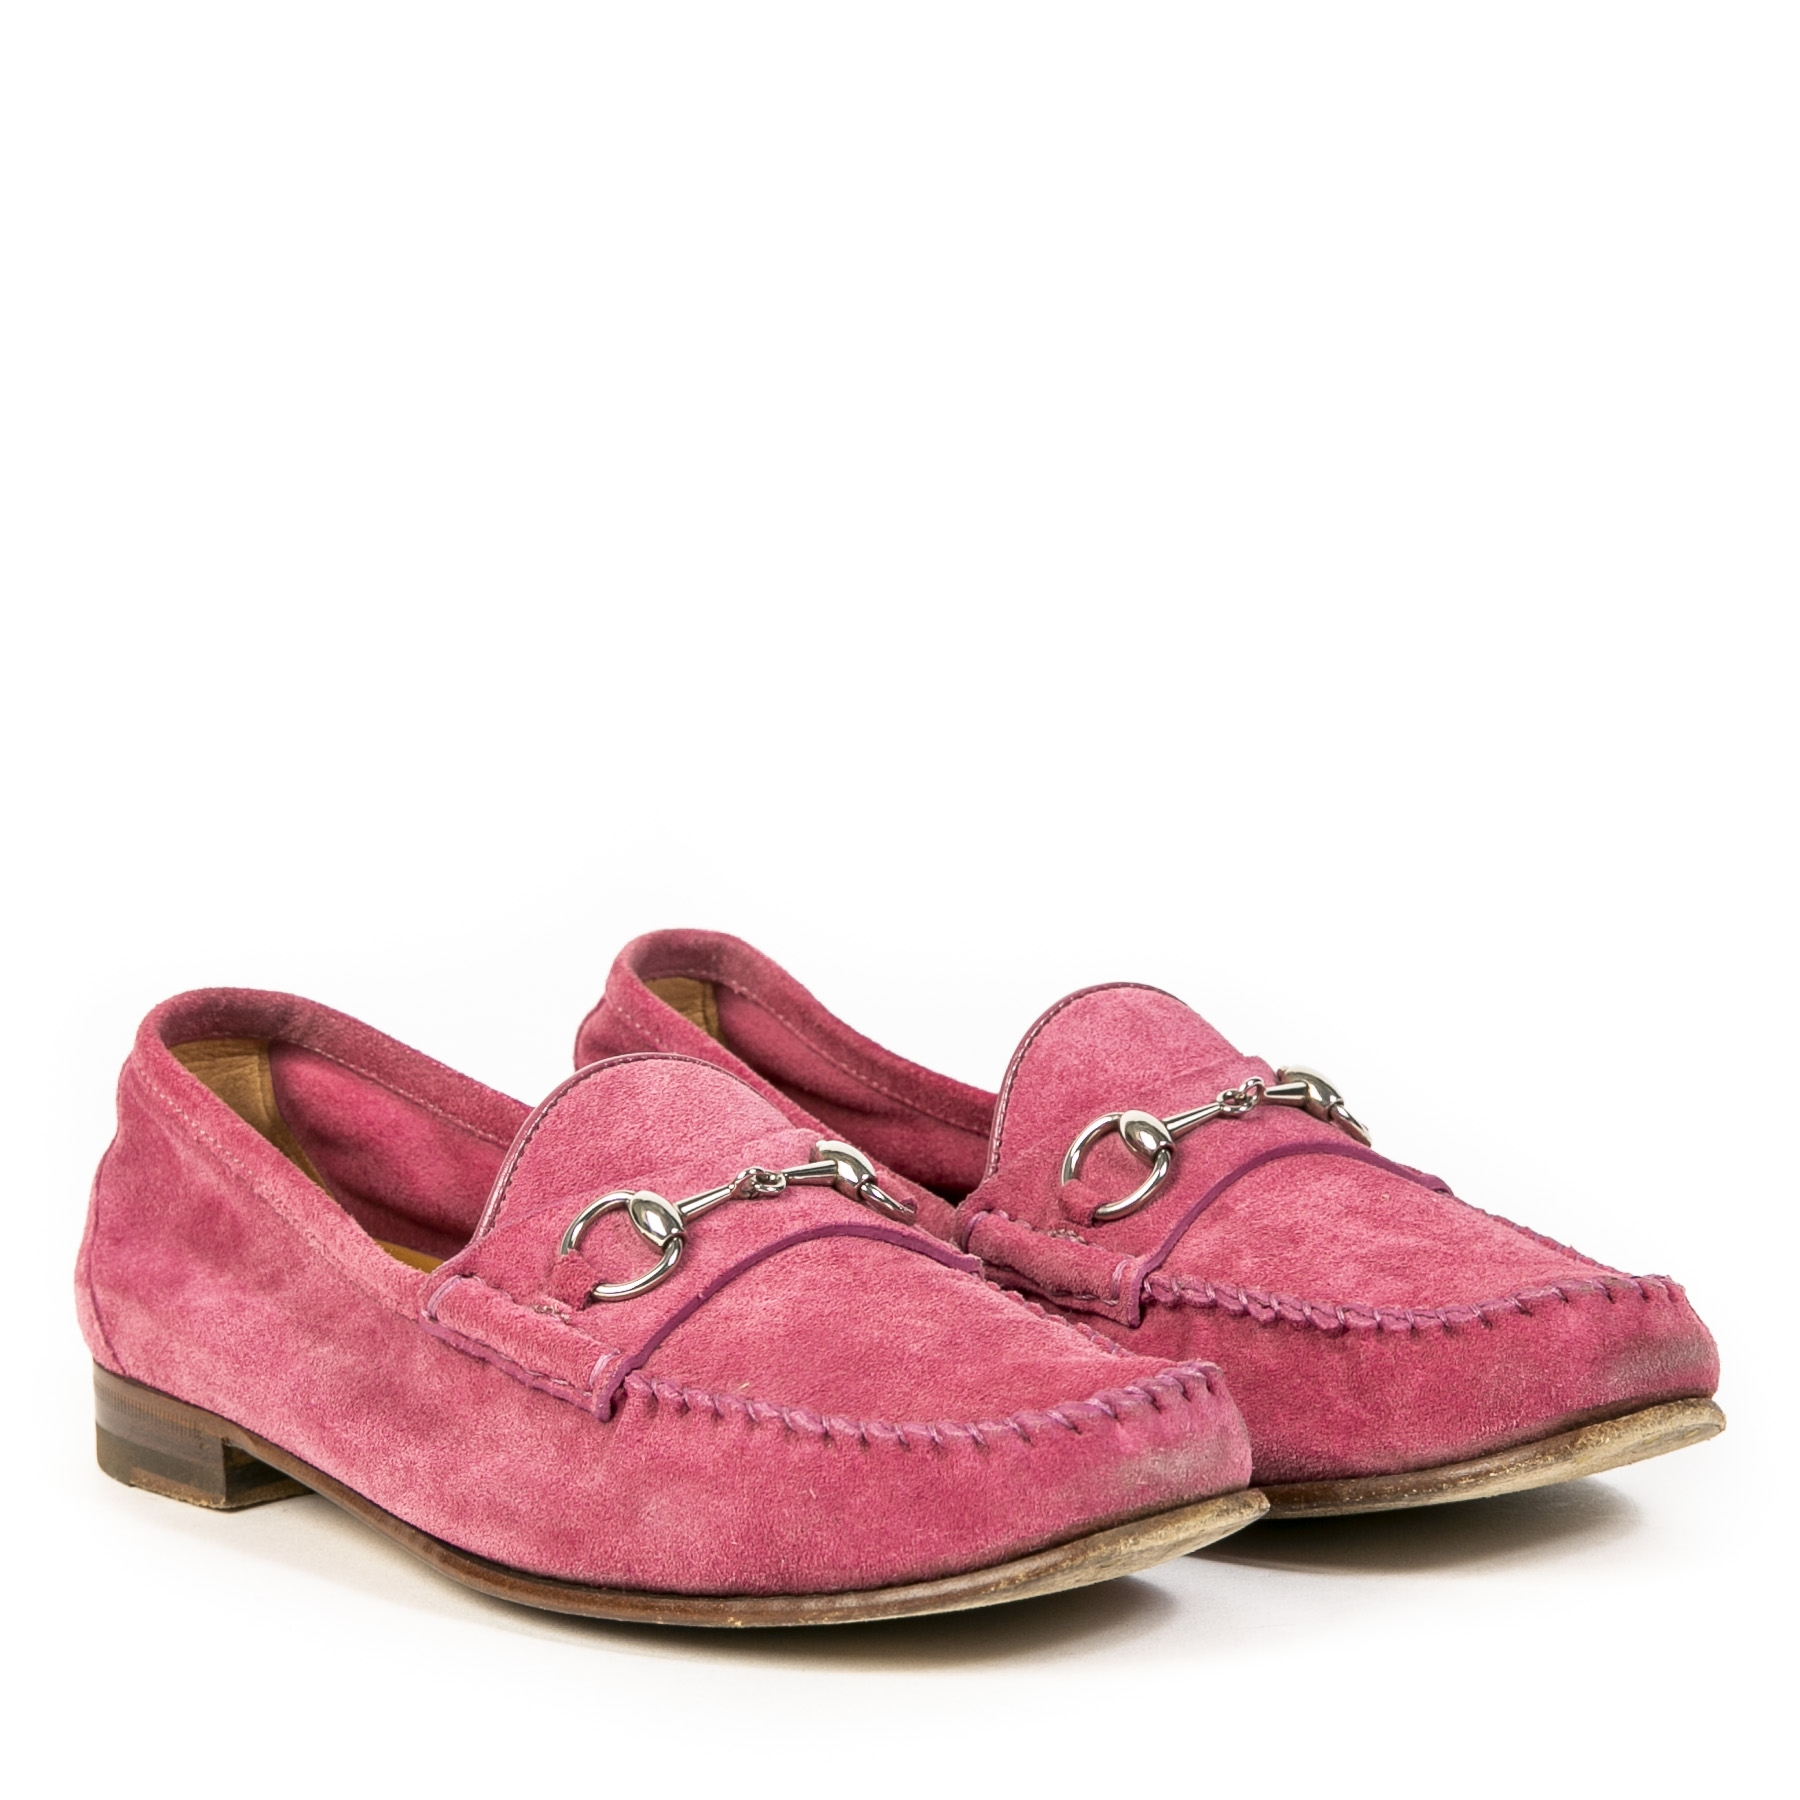 Gucci Peony Pink Suede Leather Horsebit Loafers - 37.5